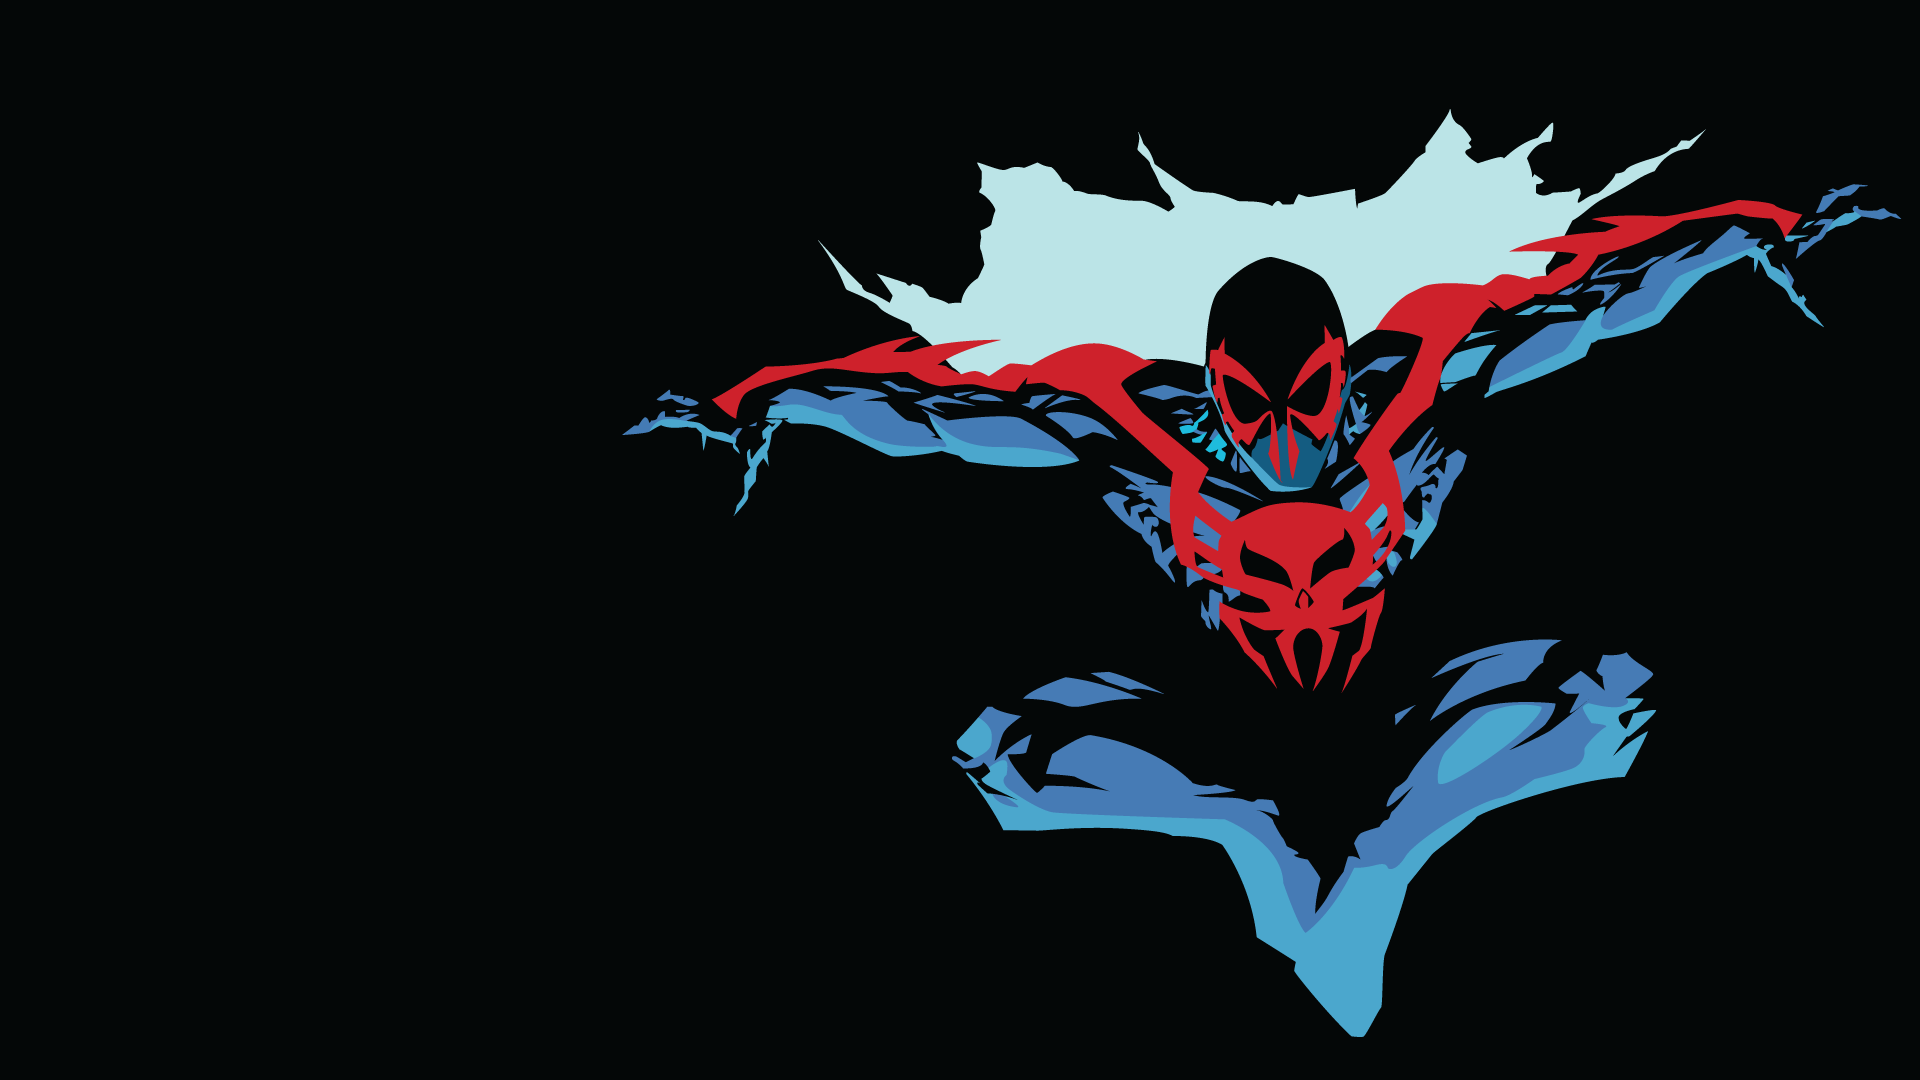 Spider man 2099 Zoom Comics   Daily Comic Book Wallpapers 1920x1080